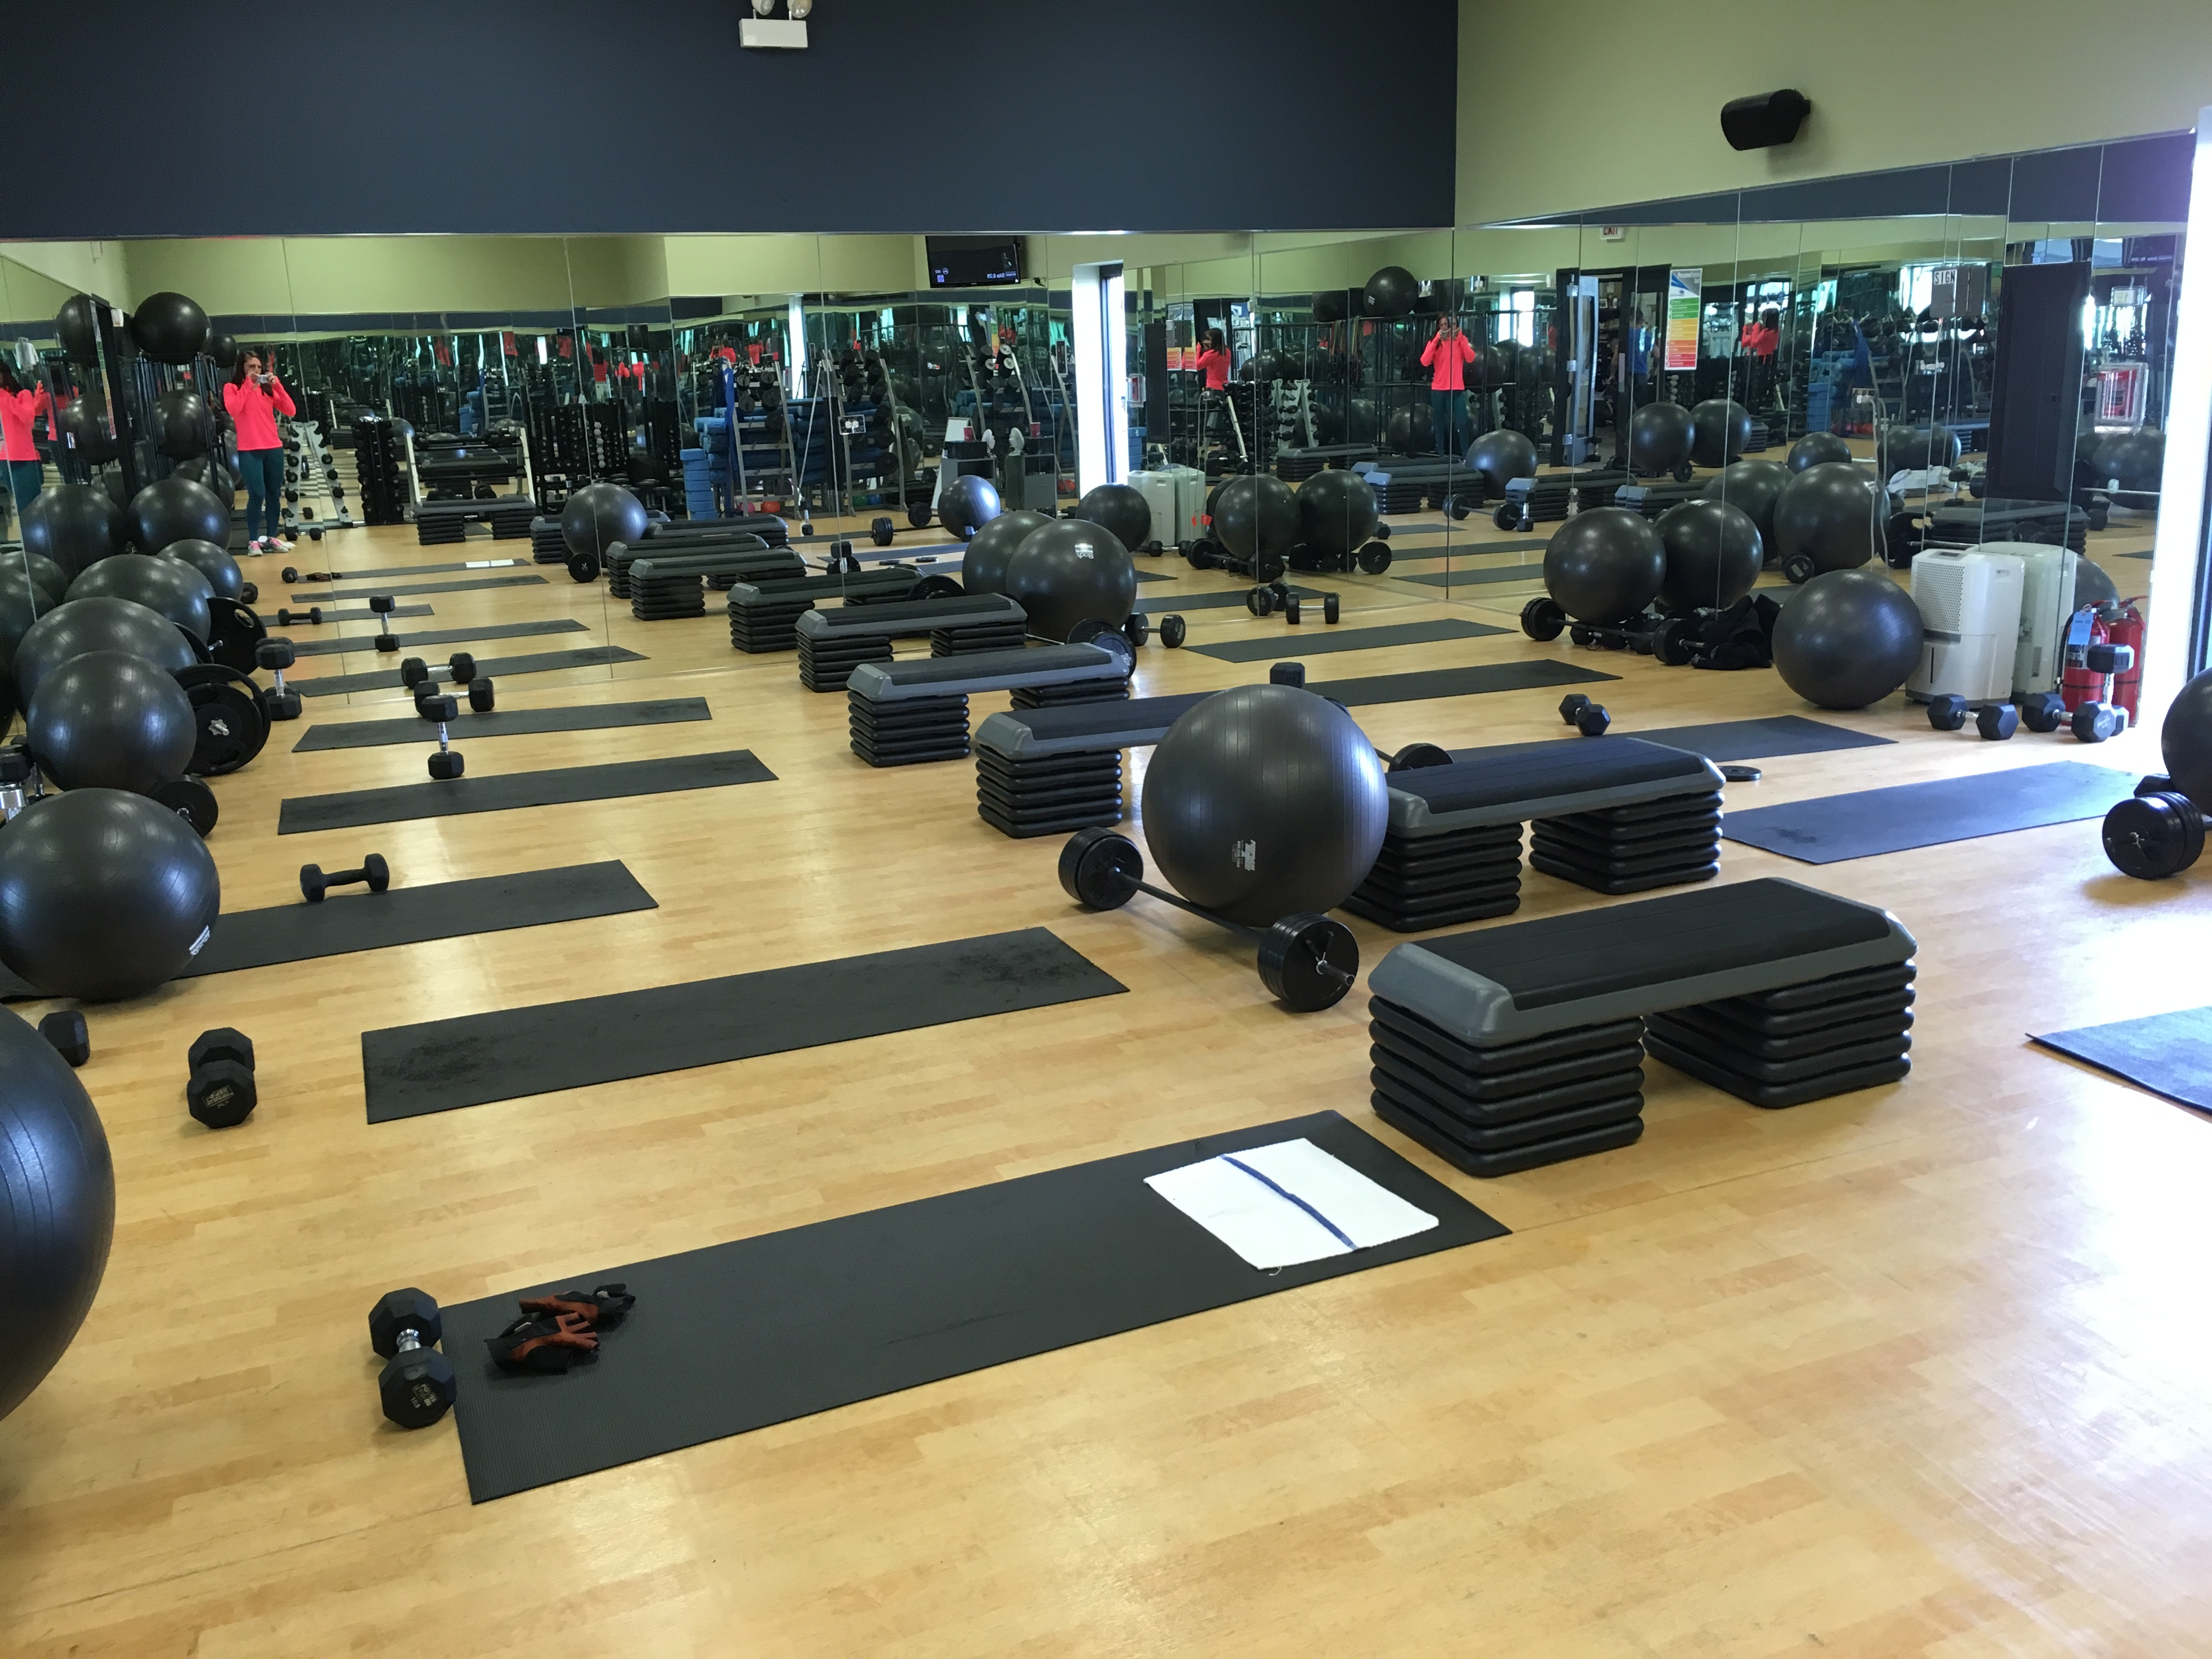 Group-Fitness-Room-